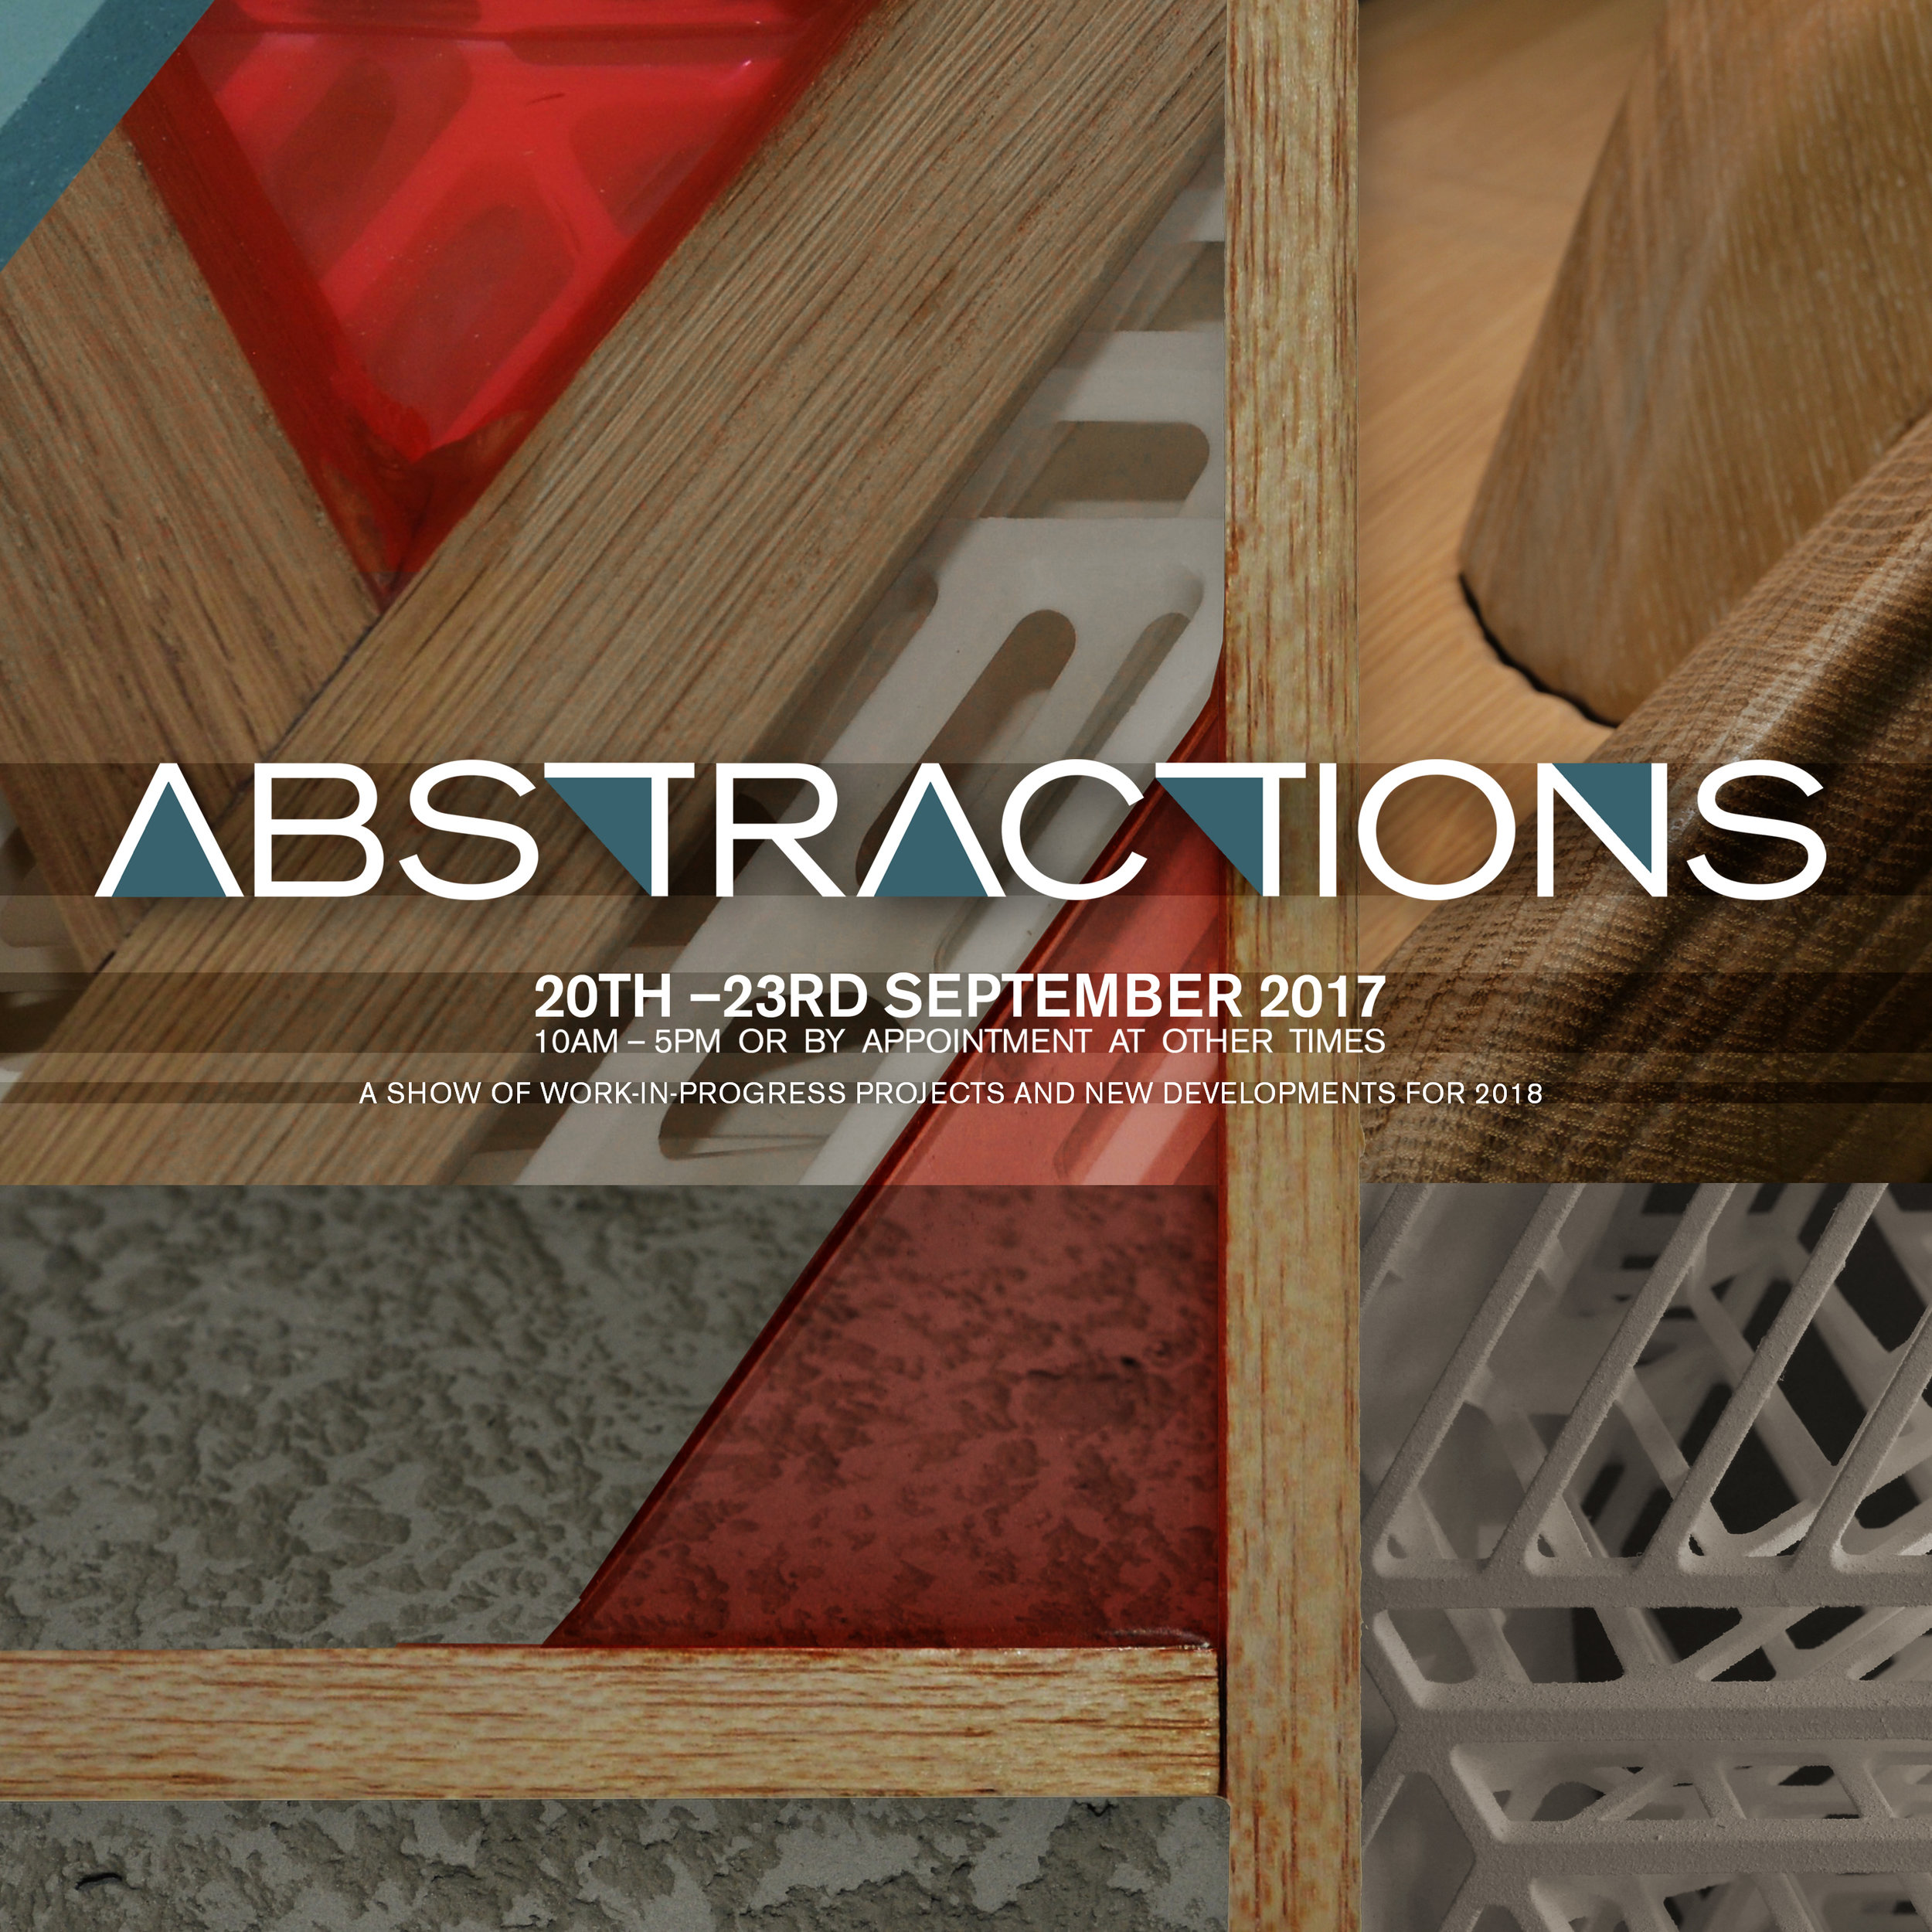 AbstractionsSquare.jpg